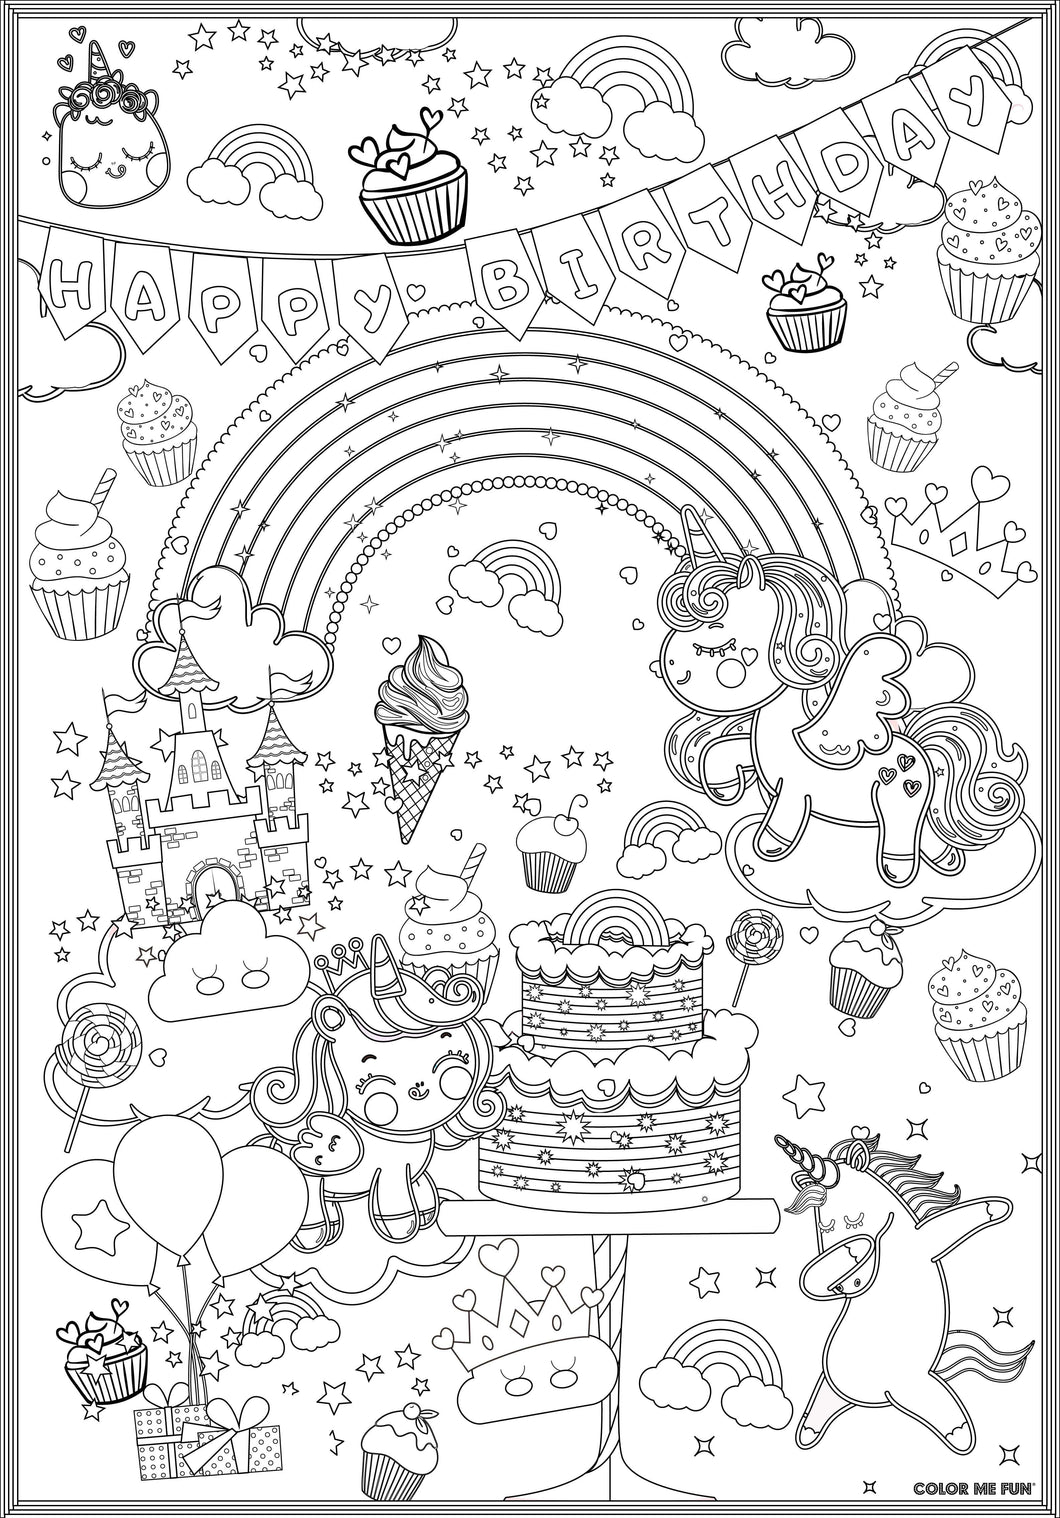 ColorMeFun UNICORN BIRTHDAY